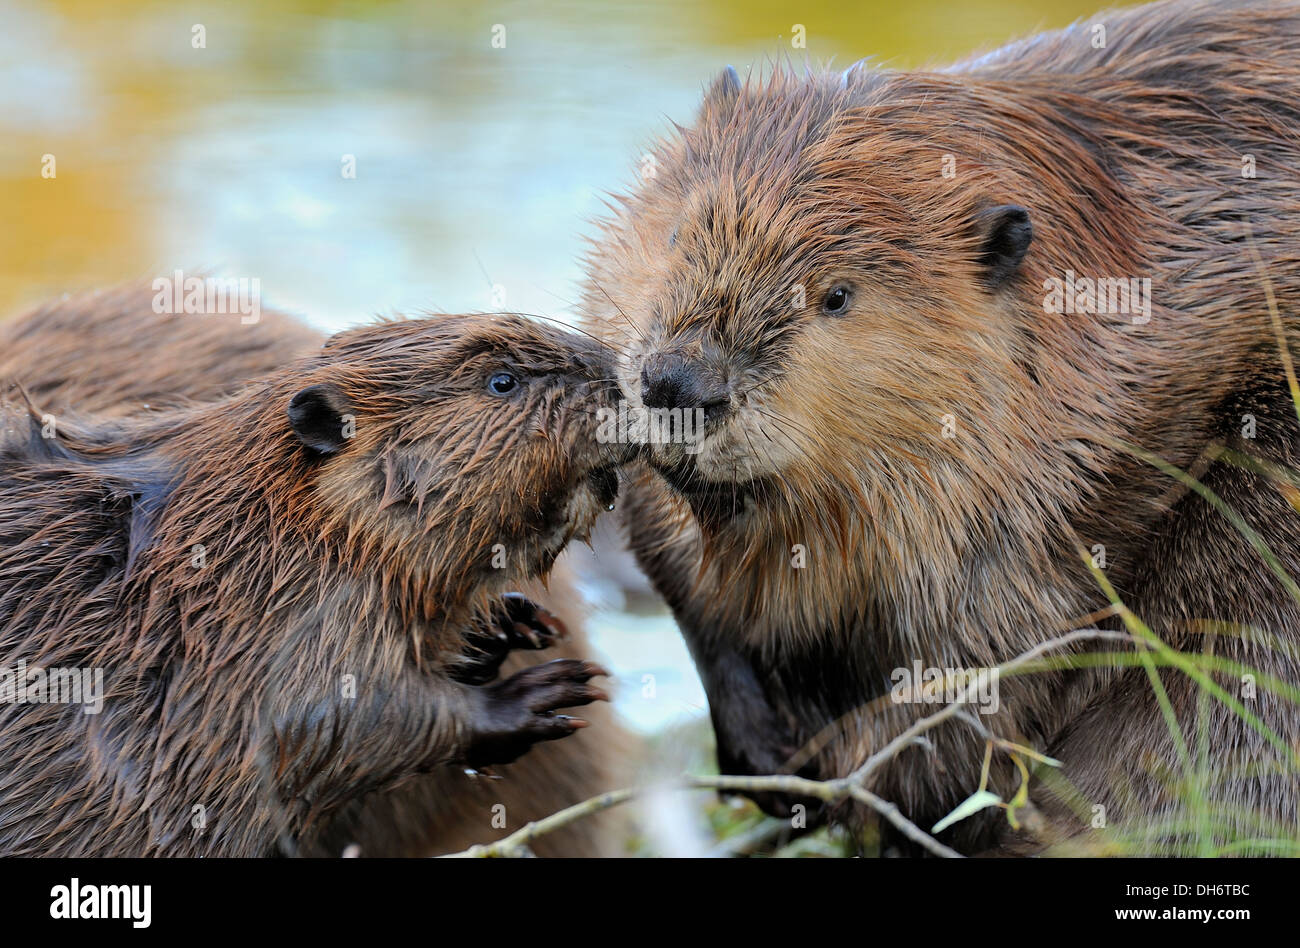 A kit beaver nuzzles its mother as they rest by the calm waters - Stock Image